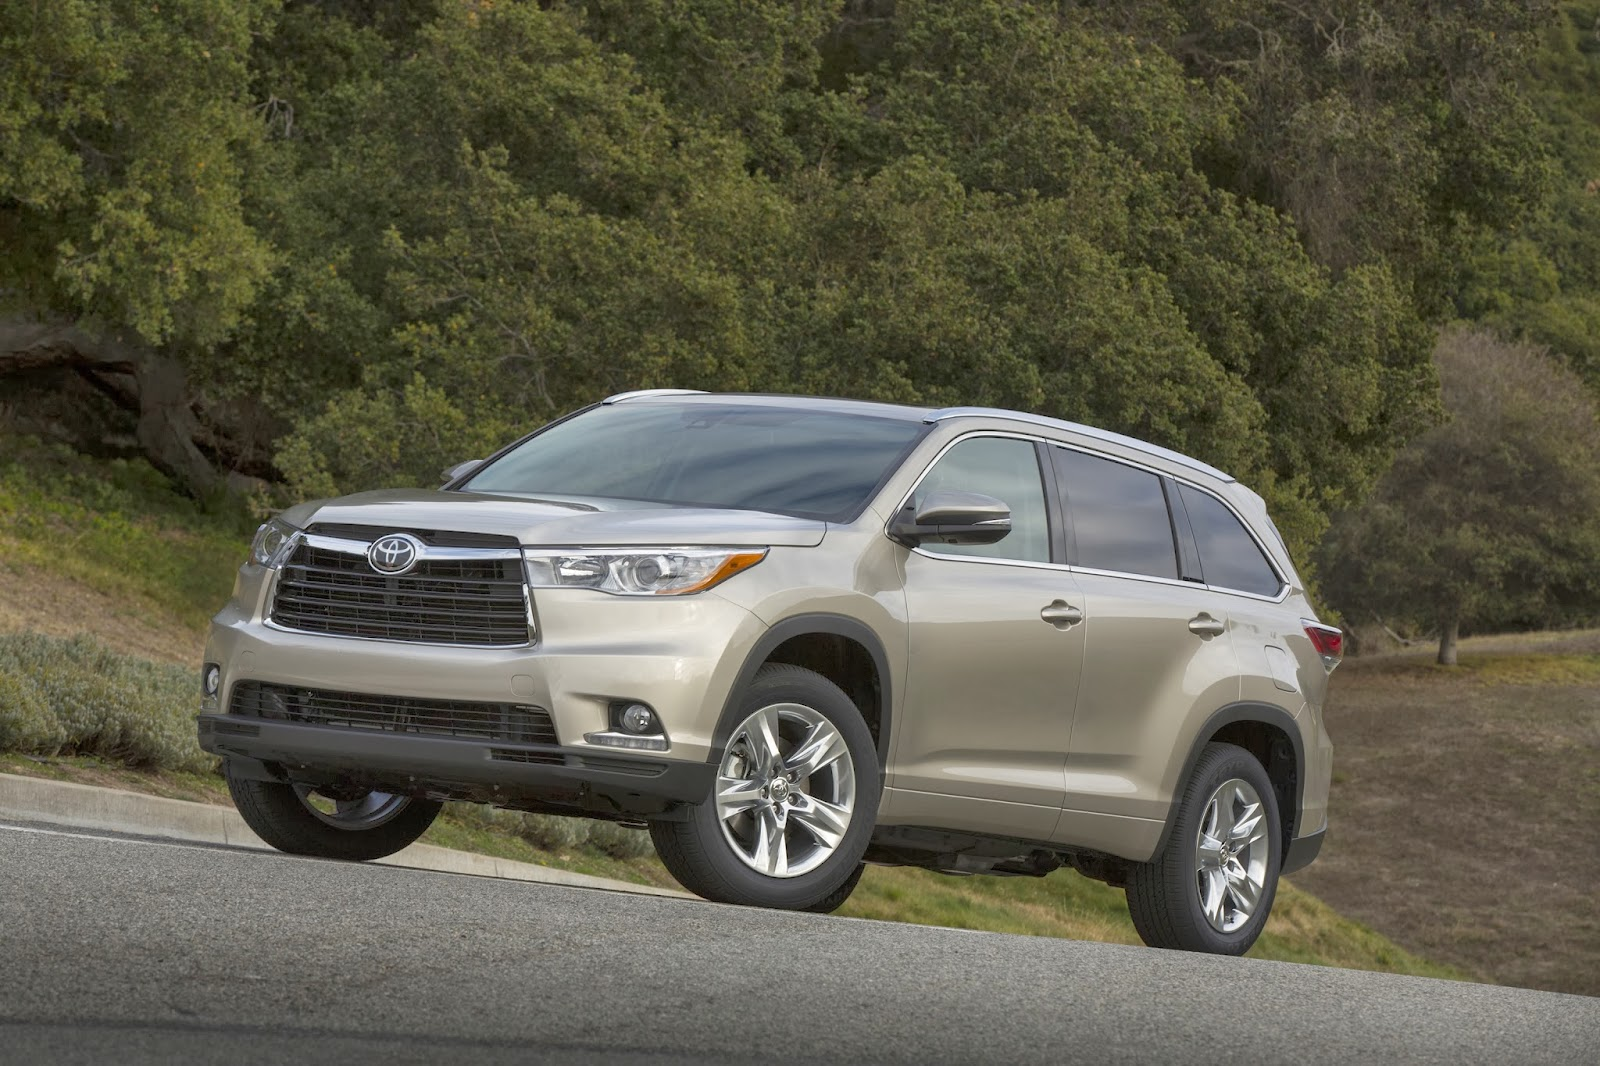 2014 toyota highlander a stylish and roomy people mover